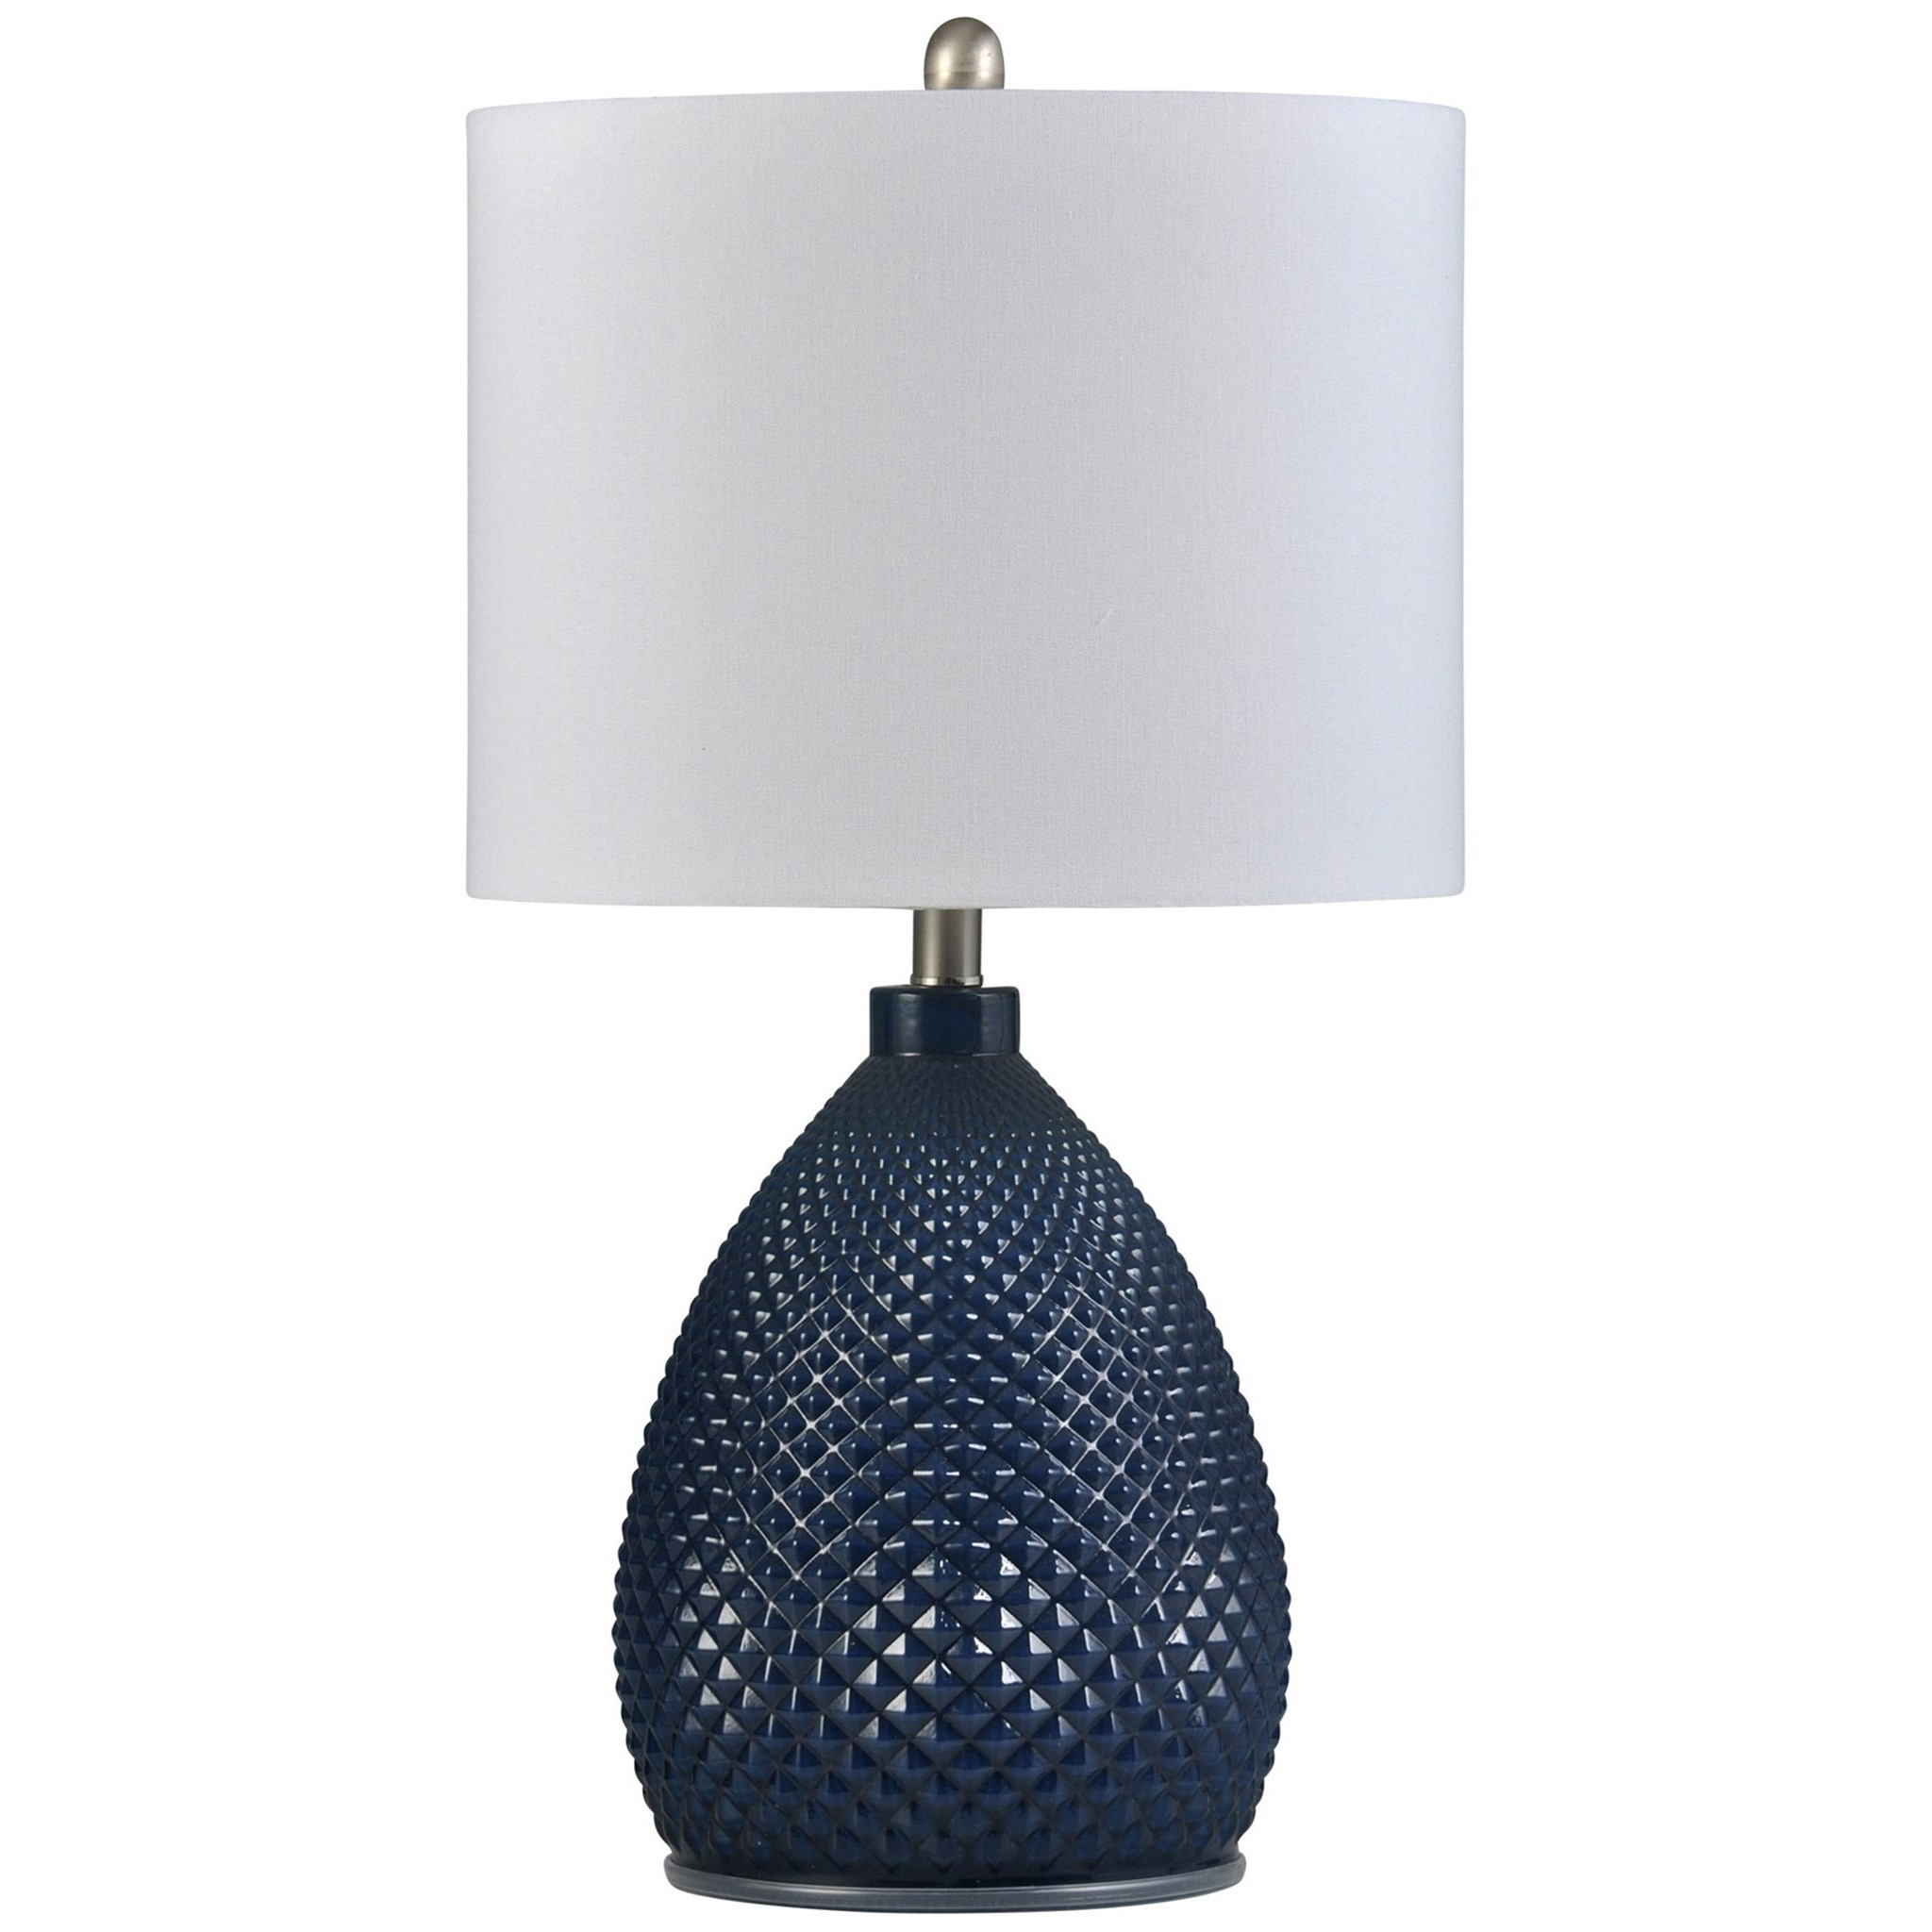 Lamps Navy Blue Lamp by StyleCraft at Alison Craig Home Furnishings